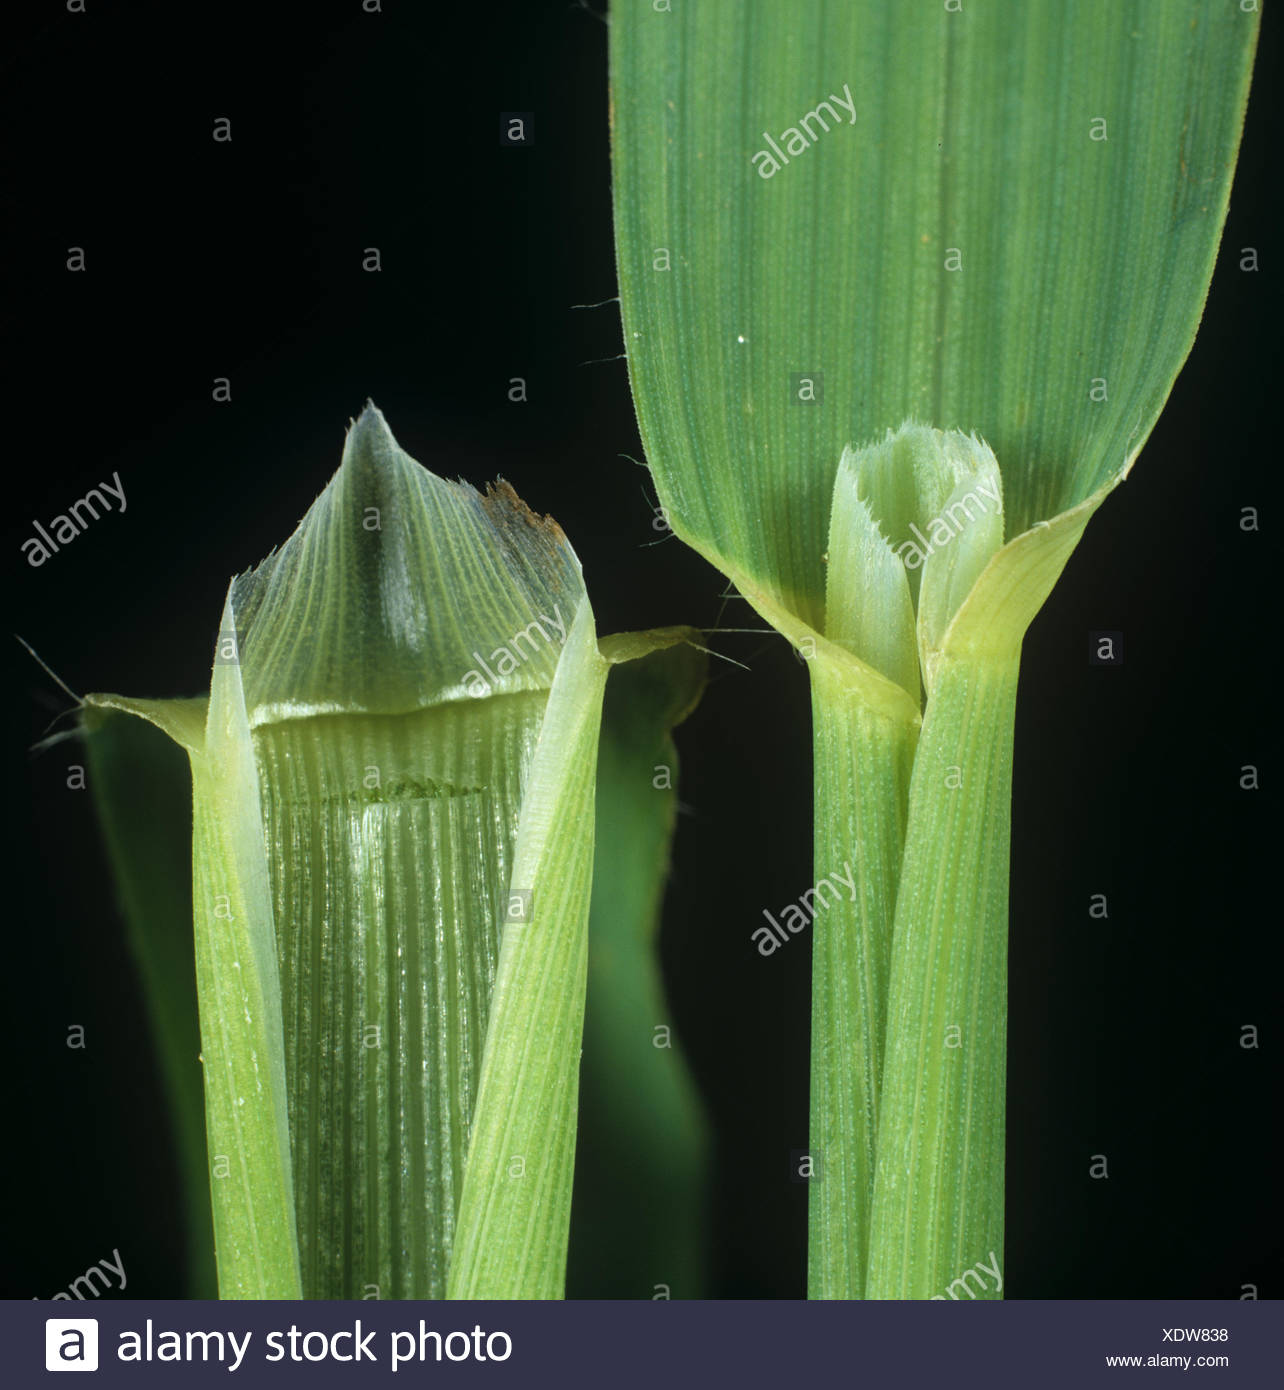 Wild oat, Avena fatua, leaf ligule of an agricultural grass weed Stock Photo